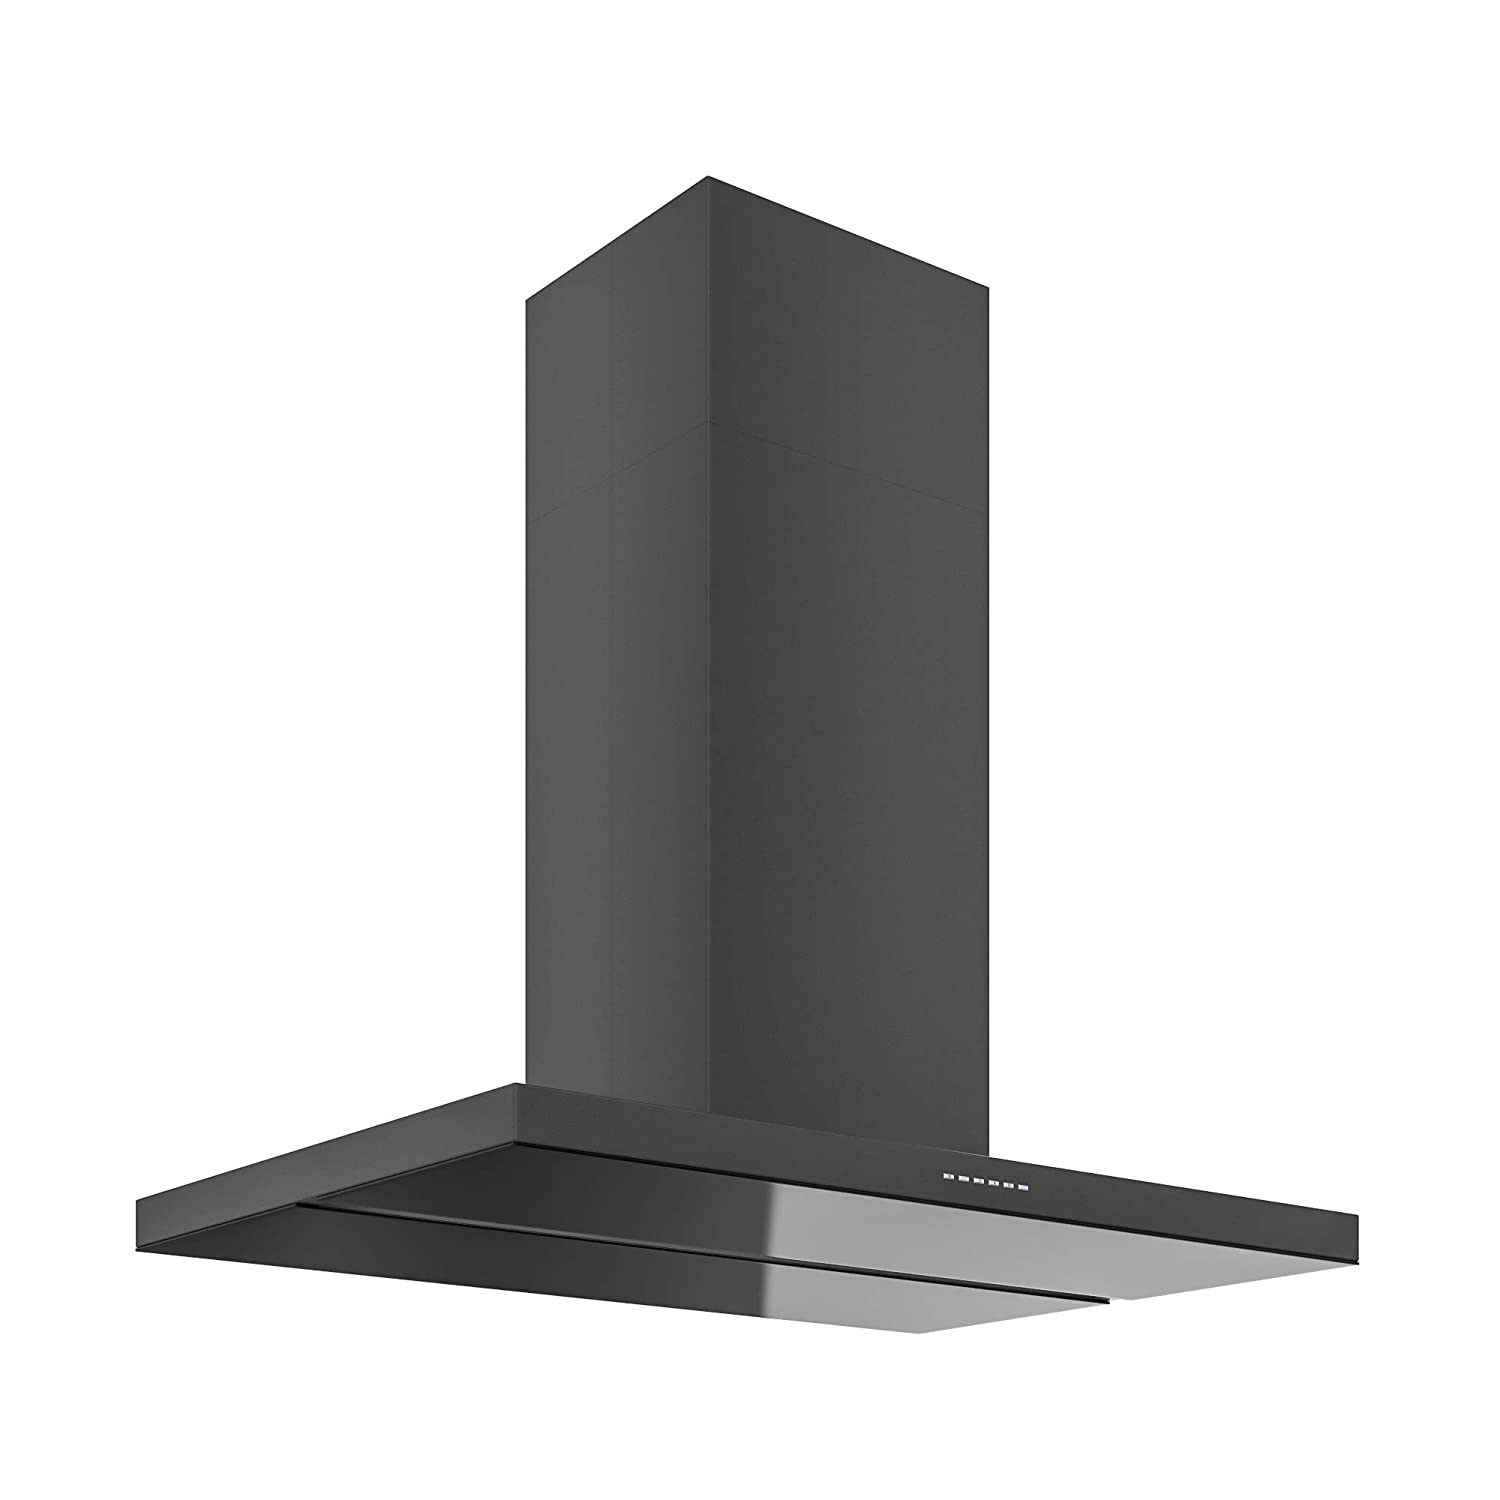 Futuro Futuro Viale Black 36 Inch Island-mount Kitchen Range Hood - Slim Steel and Glass Design from Italy - LED Ultra-Quiet with Blower